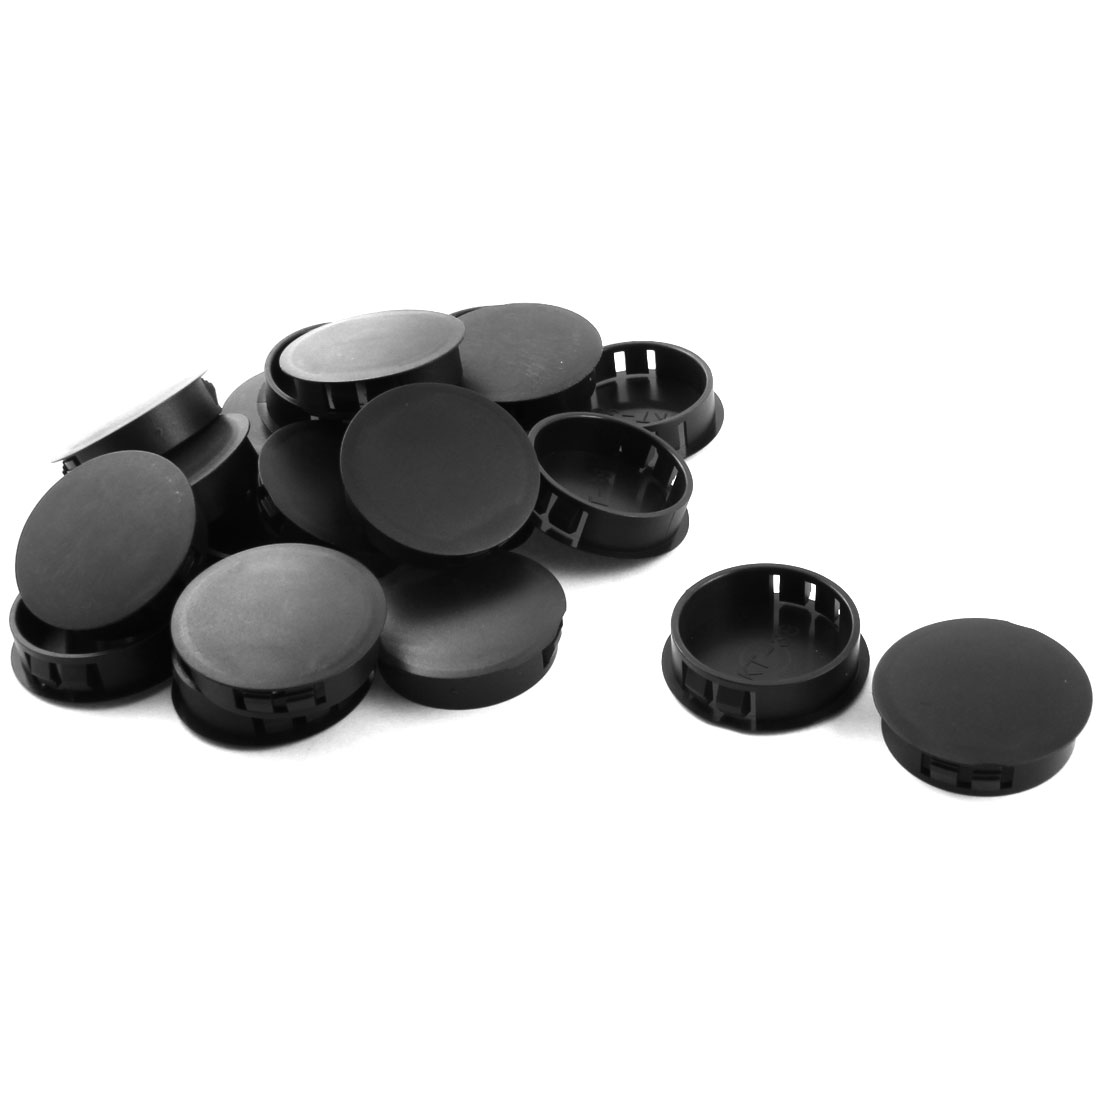 20Pcs 38mm Dia Insulated Black Plastic Snap in Mounting Blank Domed Locking Hole Cover Fastener Harness